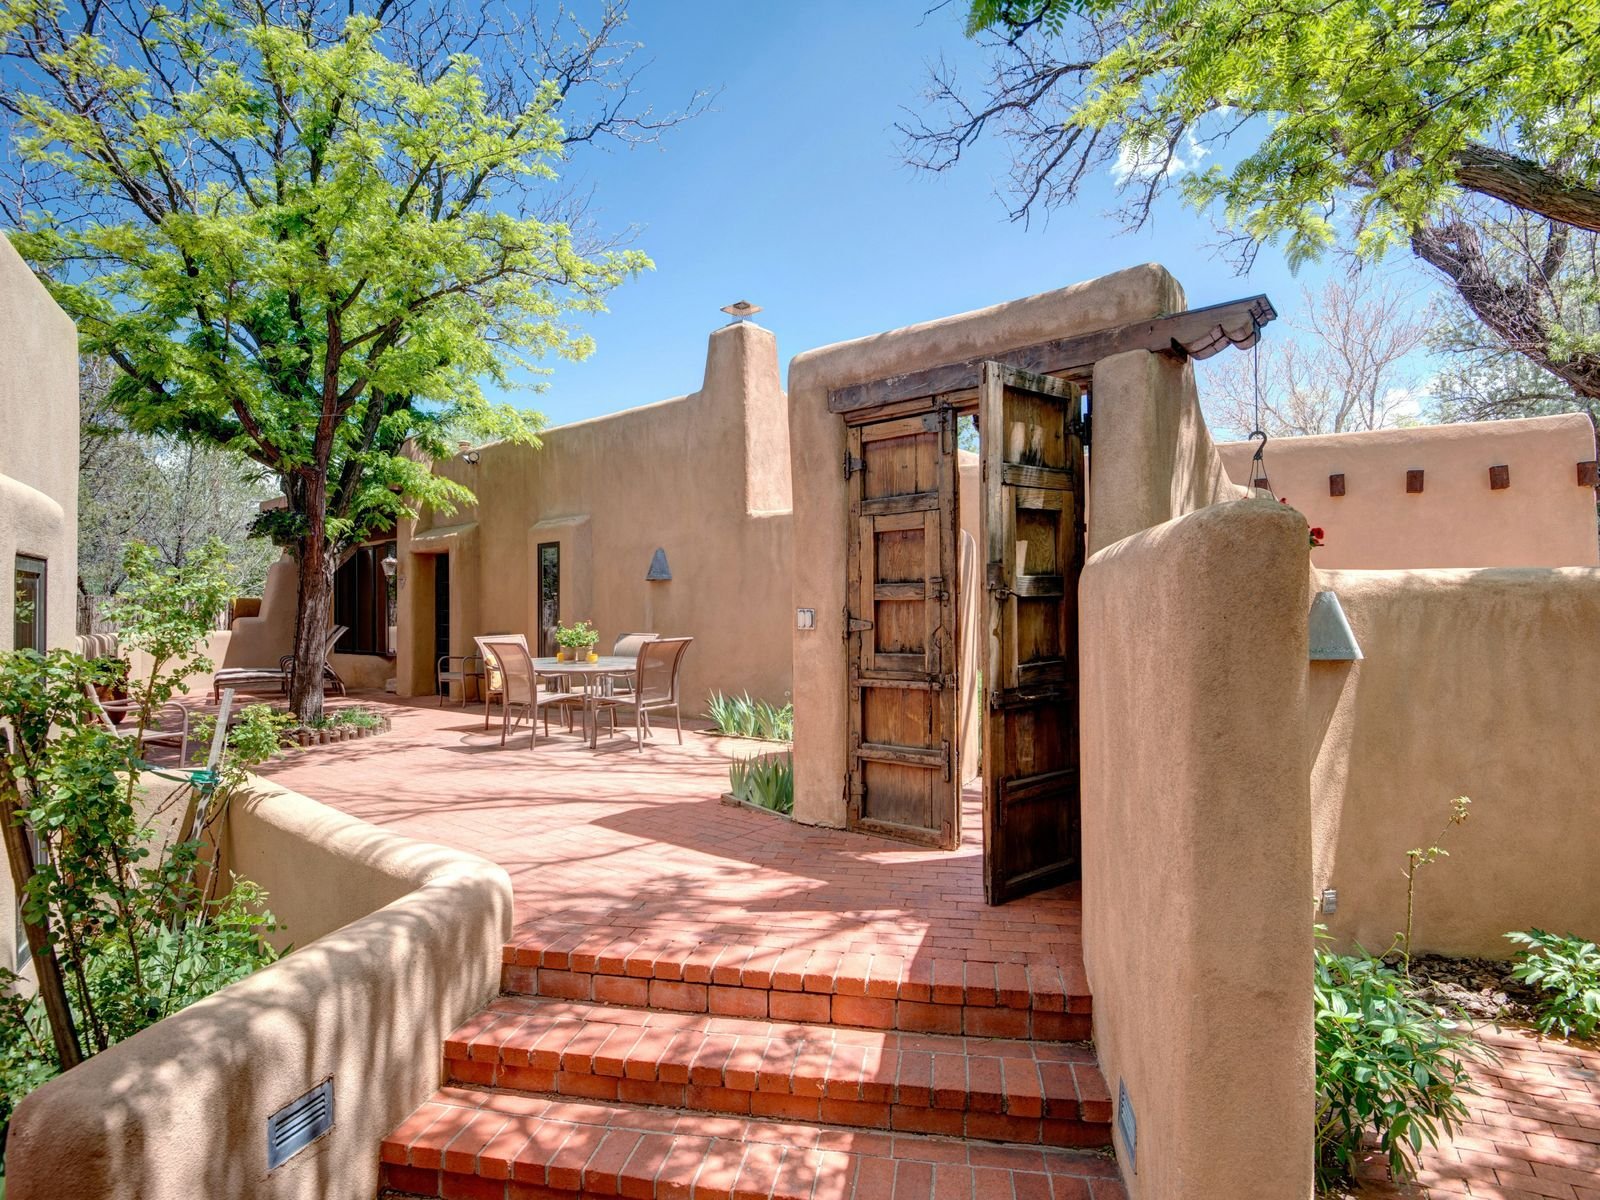 853 Camino Ranchitos, Santa Fe NM Single Family Home - Santa Fe Real Estate